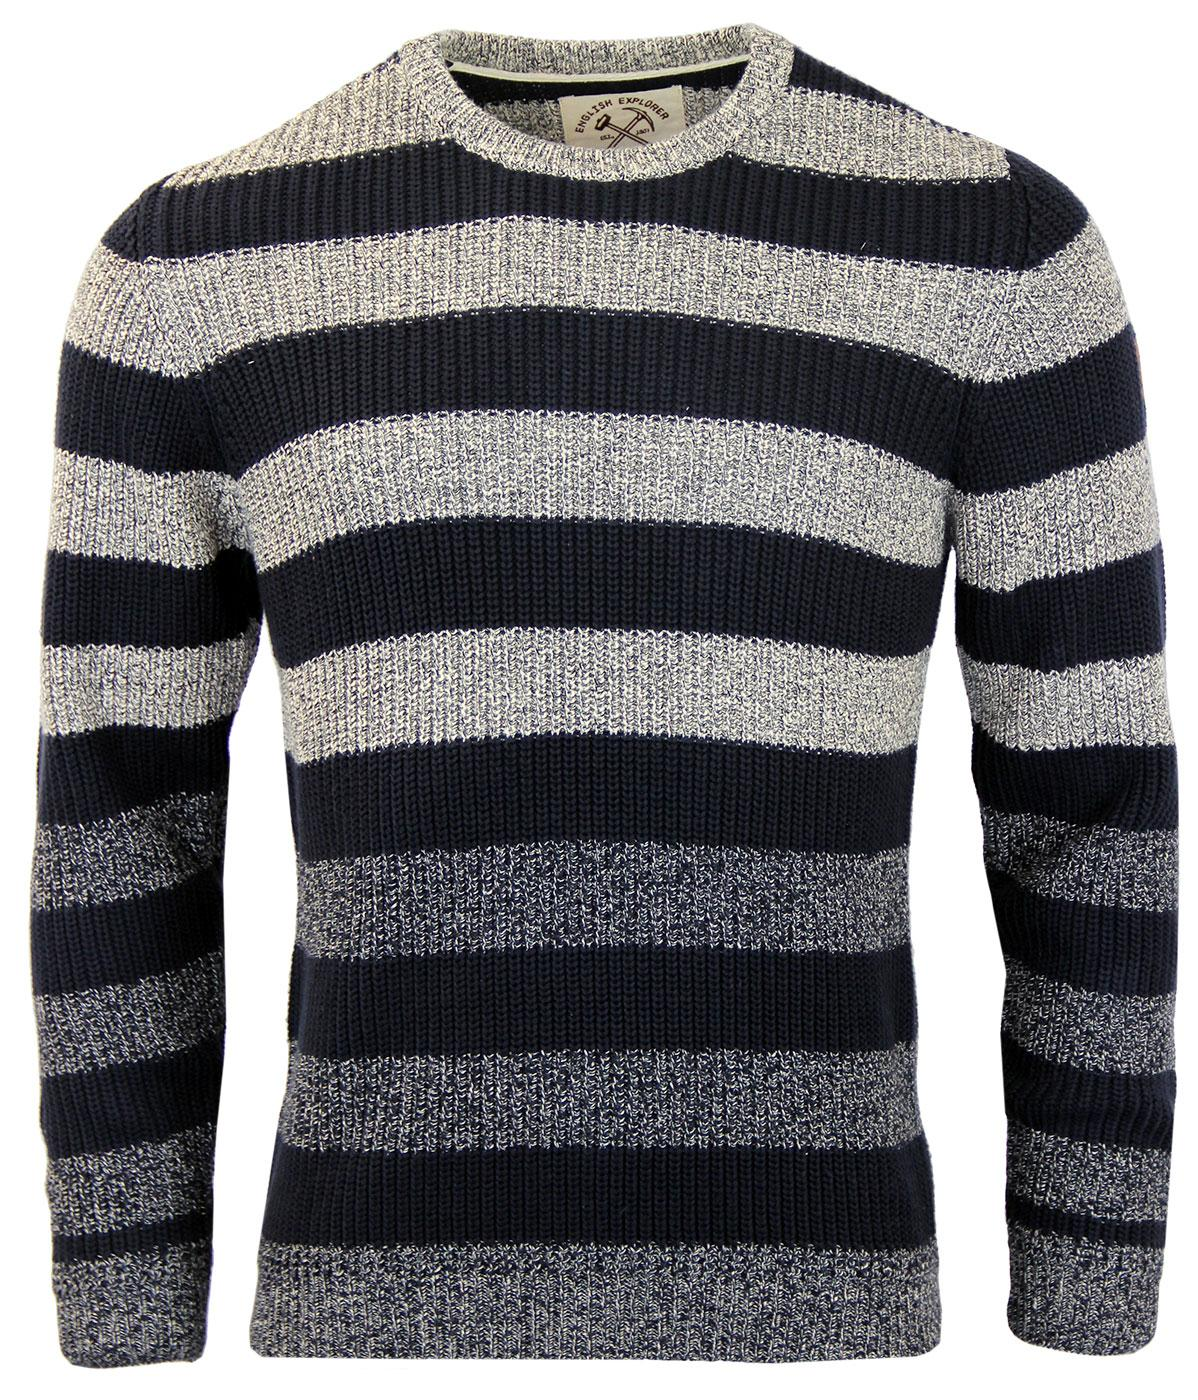 Hunt ALAN PAINE Retro Mod Block Stripe Jumper